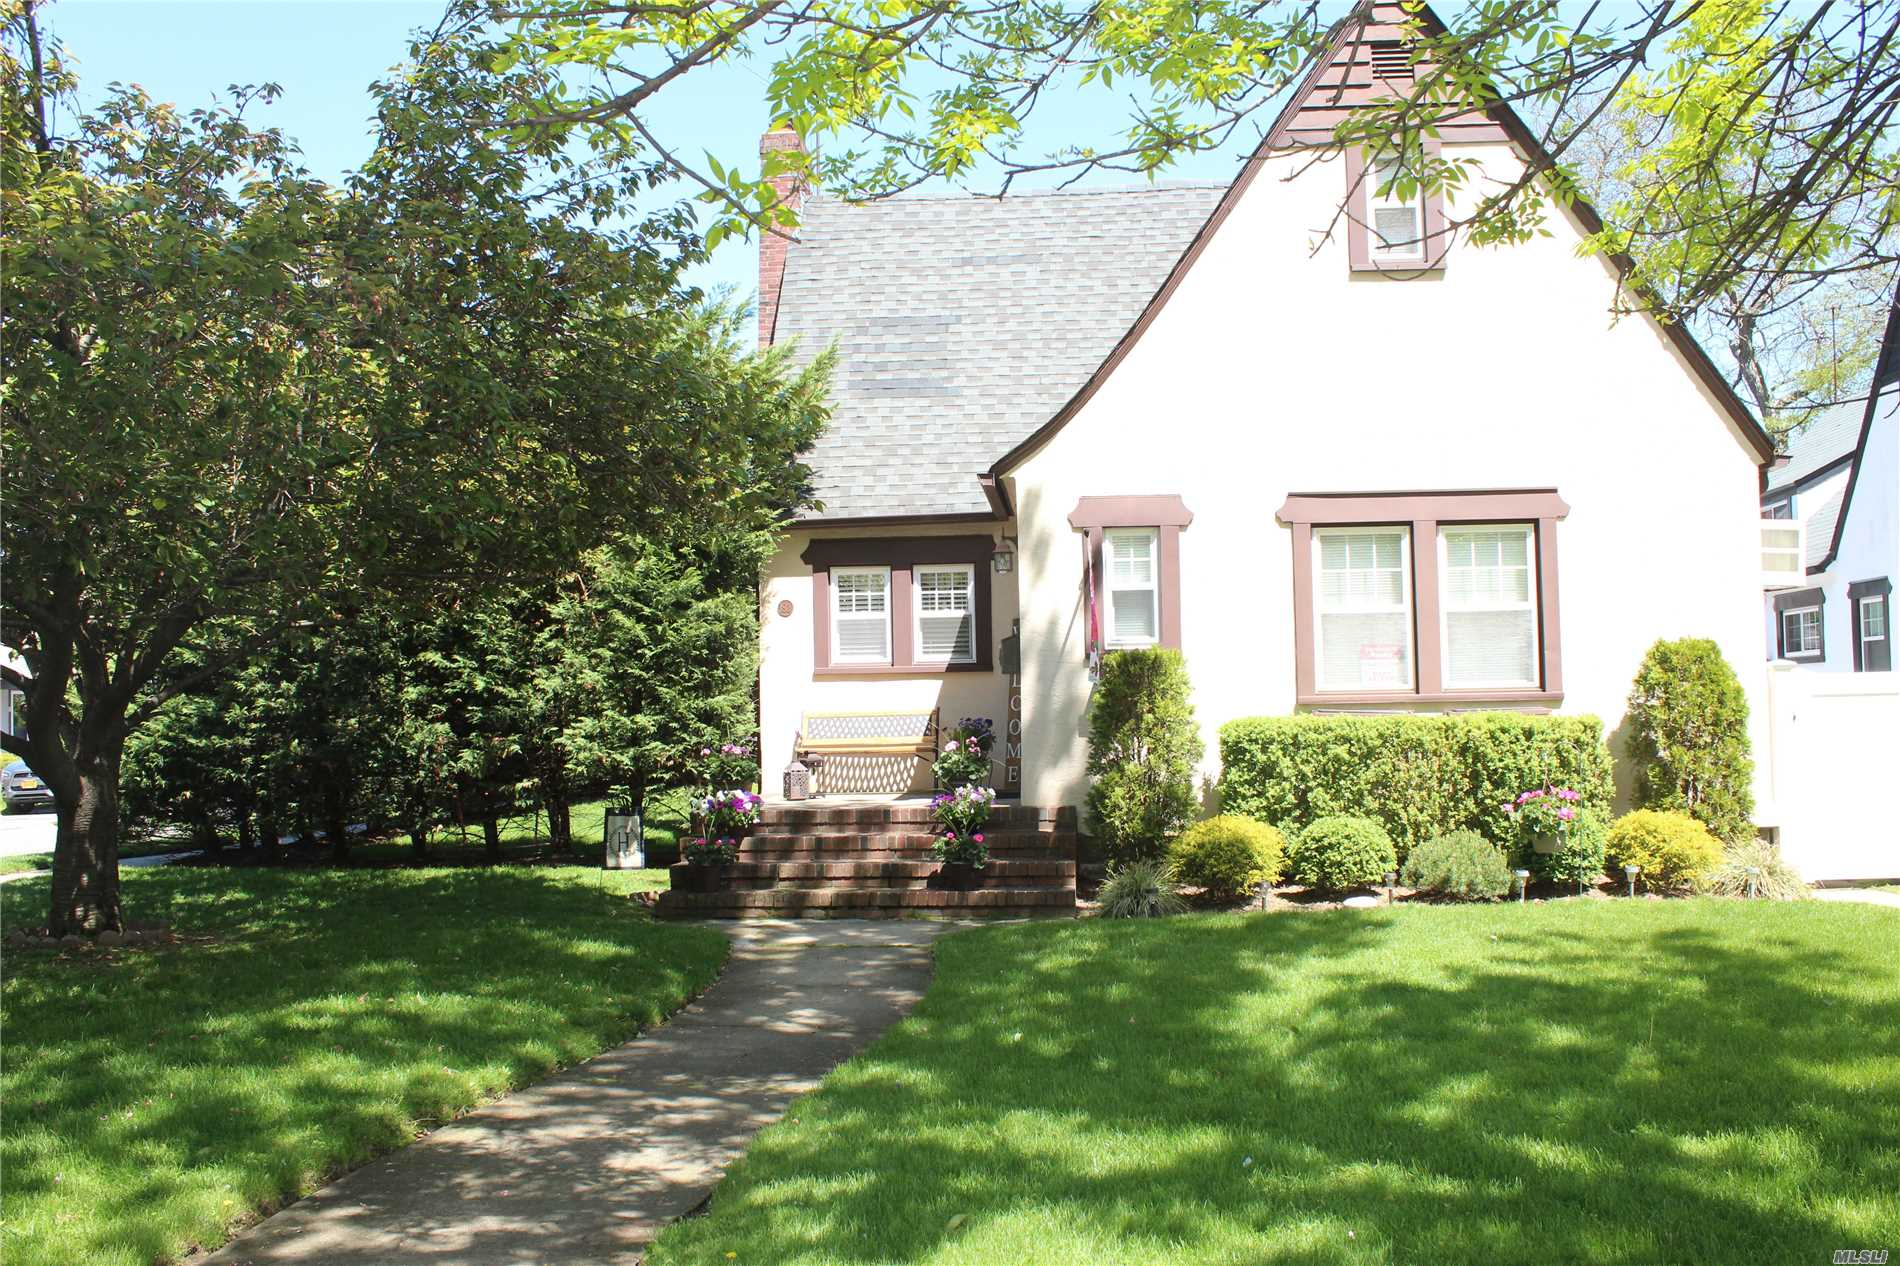 Charming 3 Bedroom Cape offering Living room, Dining room , Eat In Kitchen with Stainless Steel Appliances,  2 Full Baths, 2 Car Garage, Corner Property,  Fireplace, 200 Amp Electrical Service, Wood Floors, Basement, In ground Sprinklers, PVC Fence, Washer/Dryer,  Over sized property, Spacious Back Yard, Great Curb Appeal, Short Distance to LIRR.